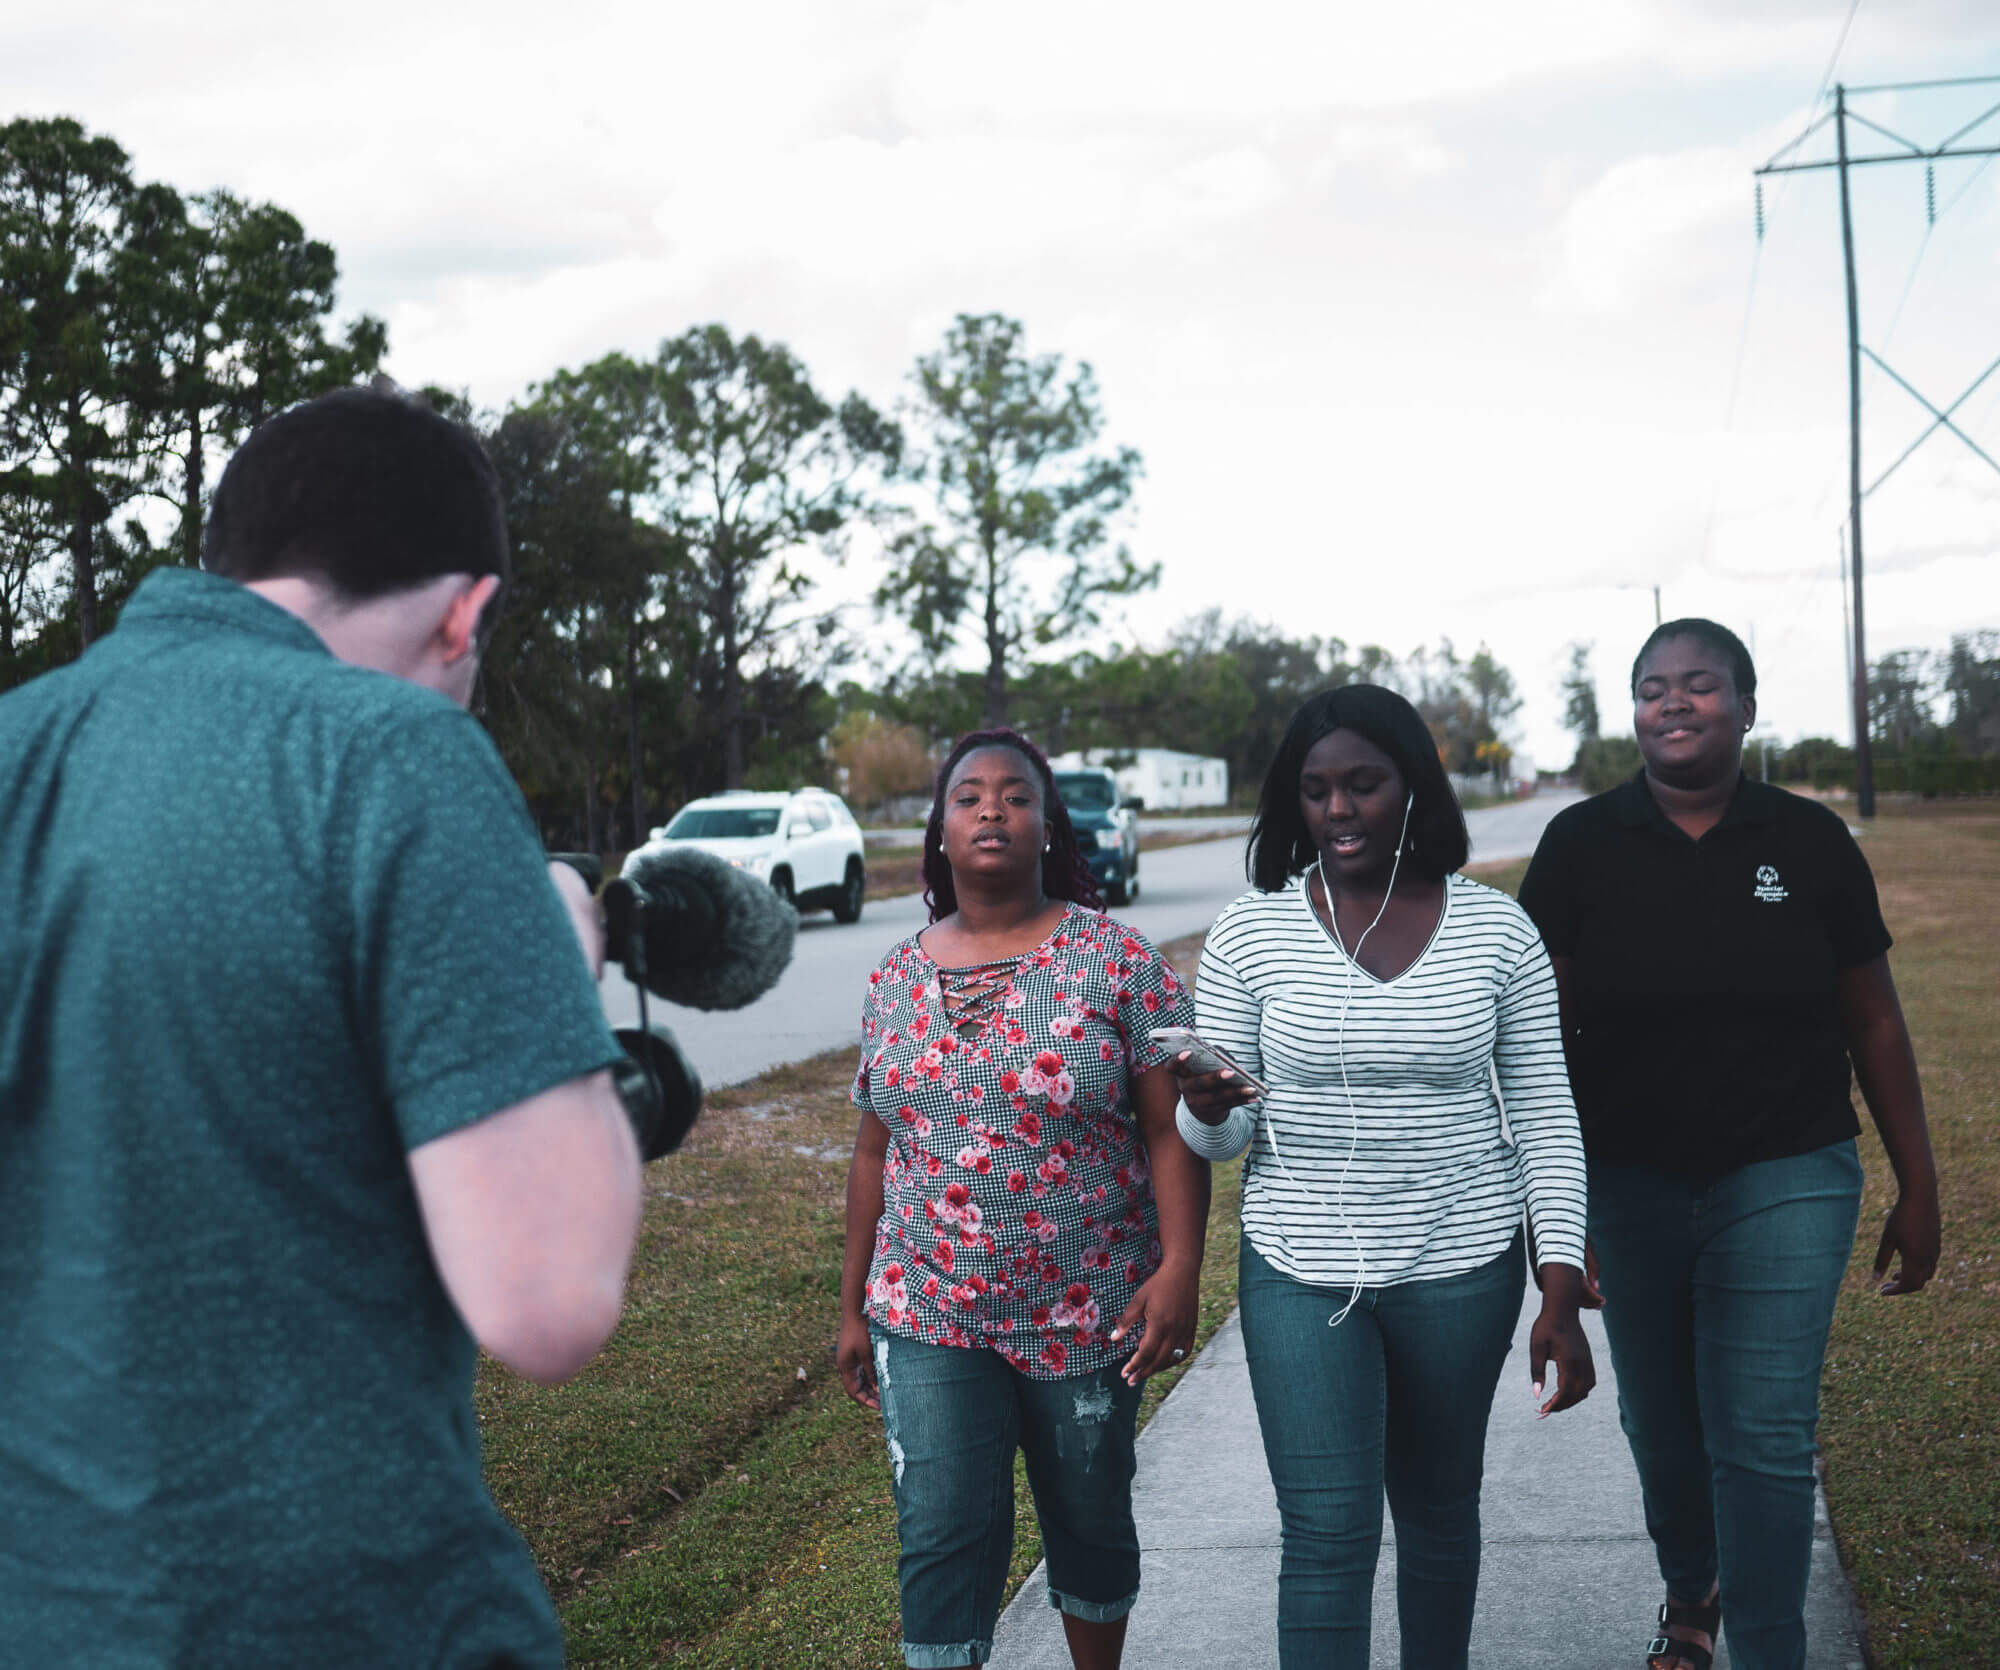 Walker filming Tajha and her sisters as they walk down the street